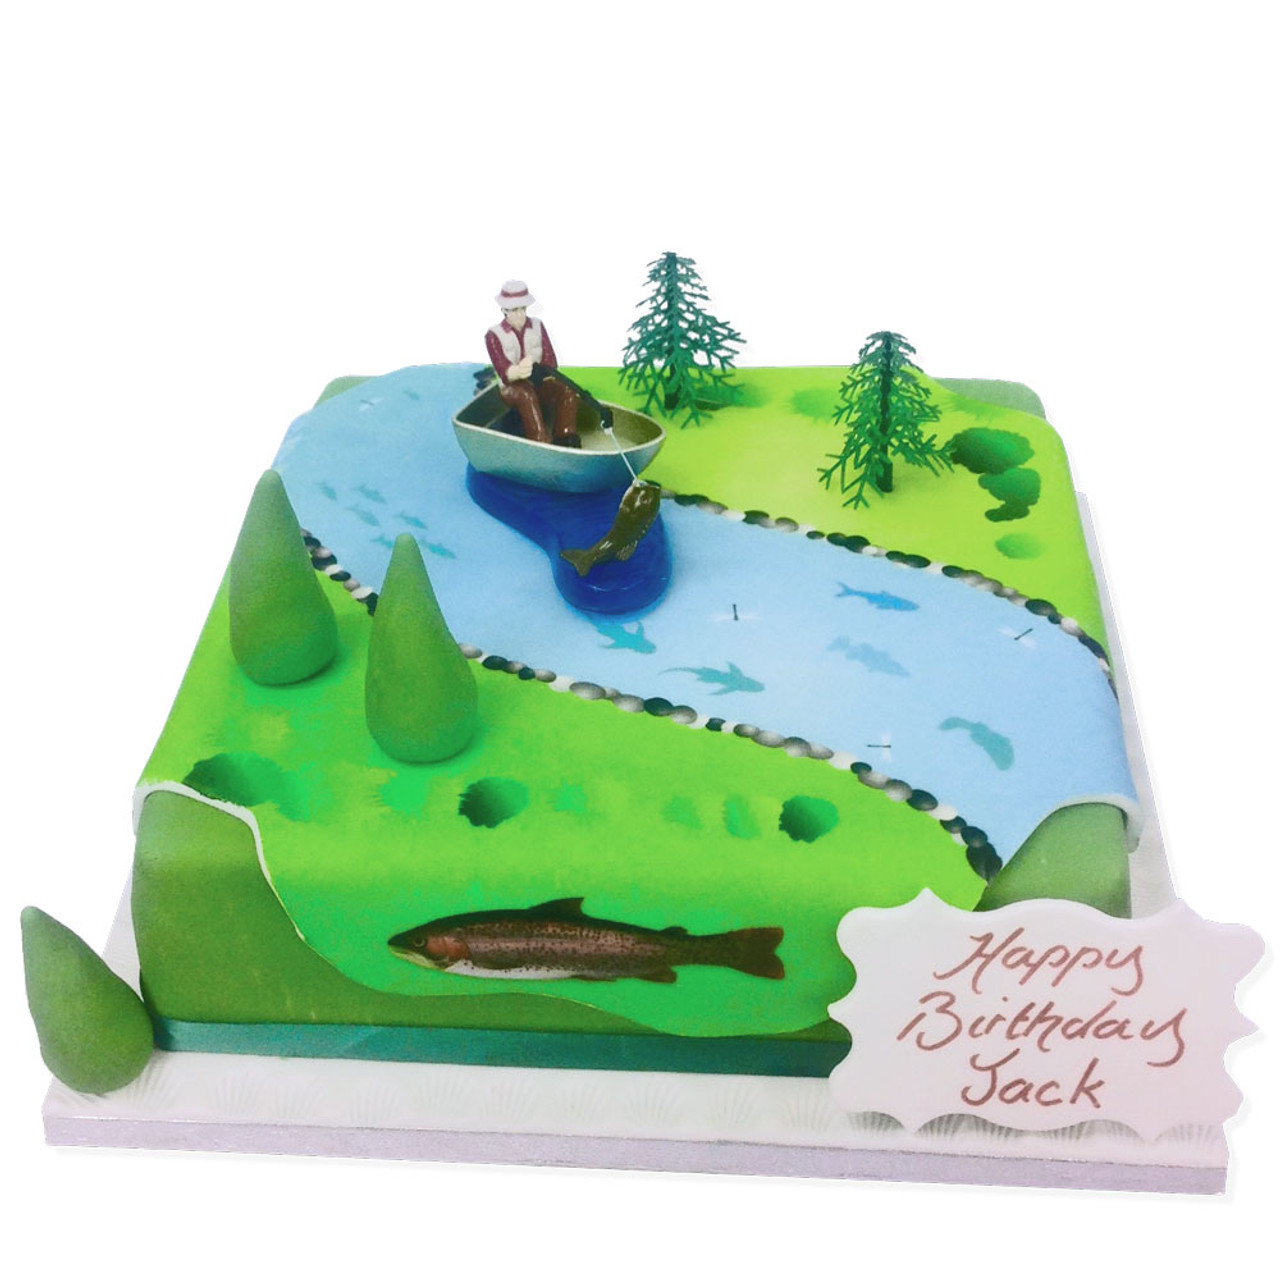 Miraculous Fishing Birthday Cake Birthday Cakes For Dad The Brilliant Bakers Personalised Birthday Cards Veneteletsinfo